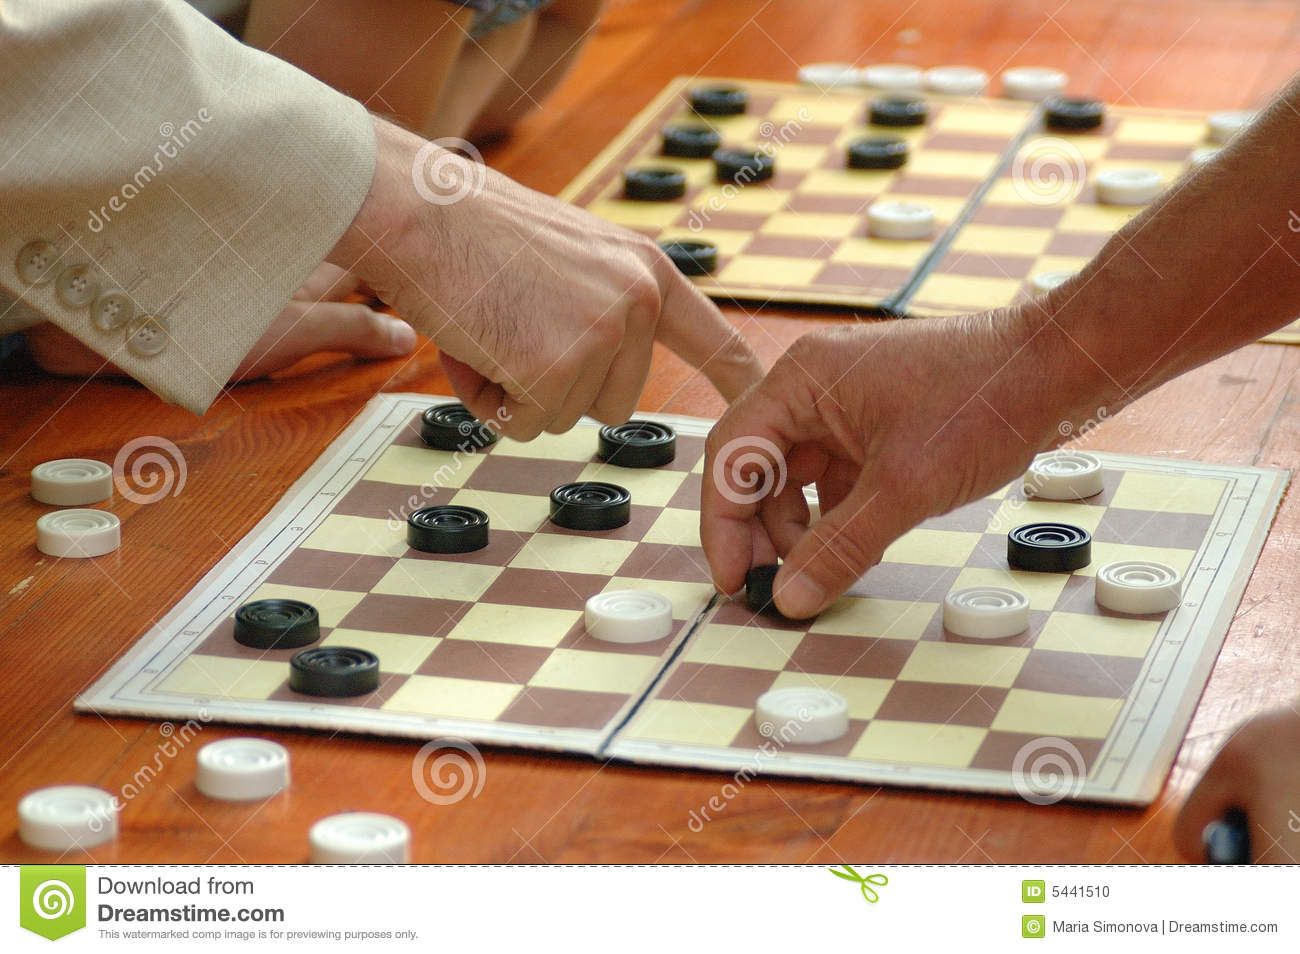 Outdoor Table For Checkers(draughts) Game Stock Photo ...